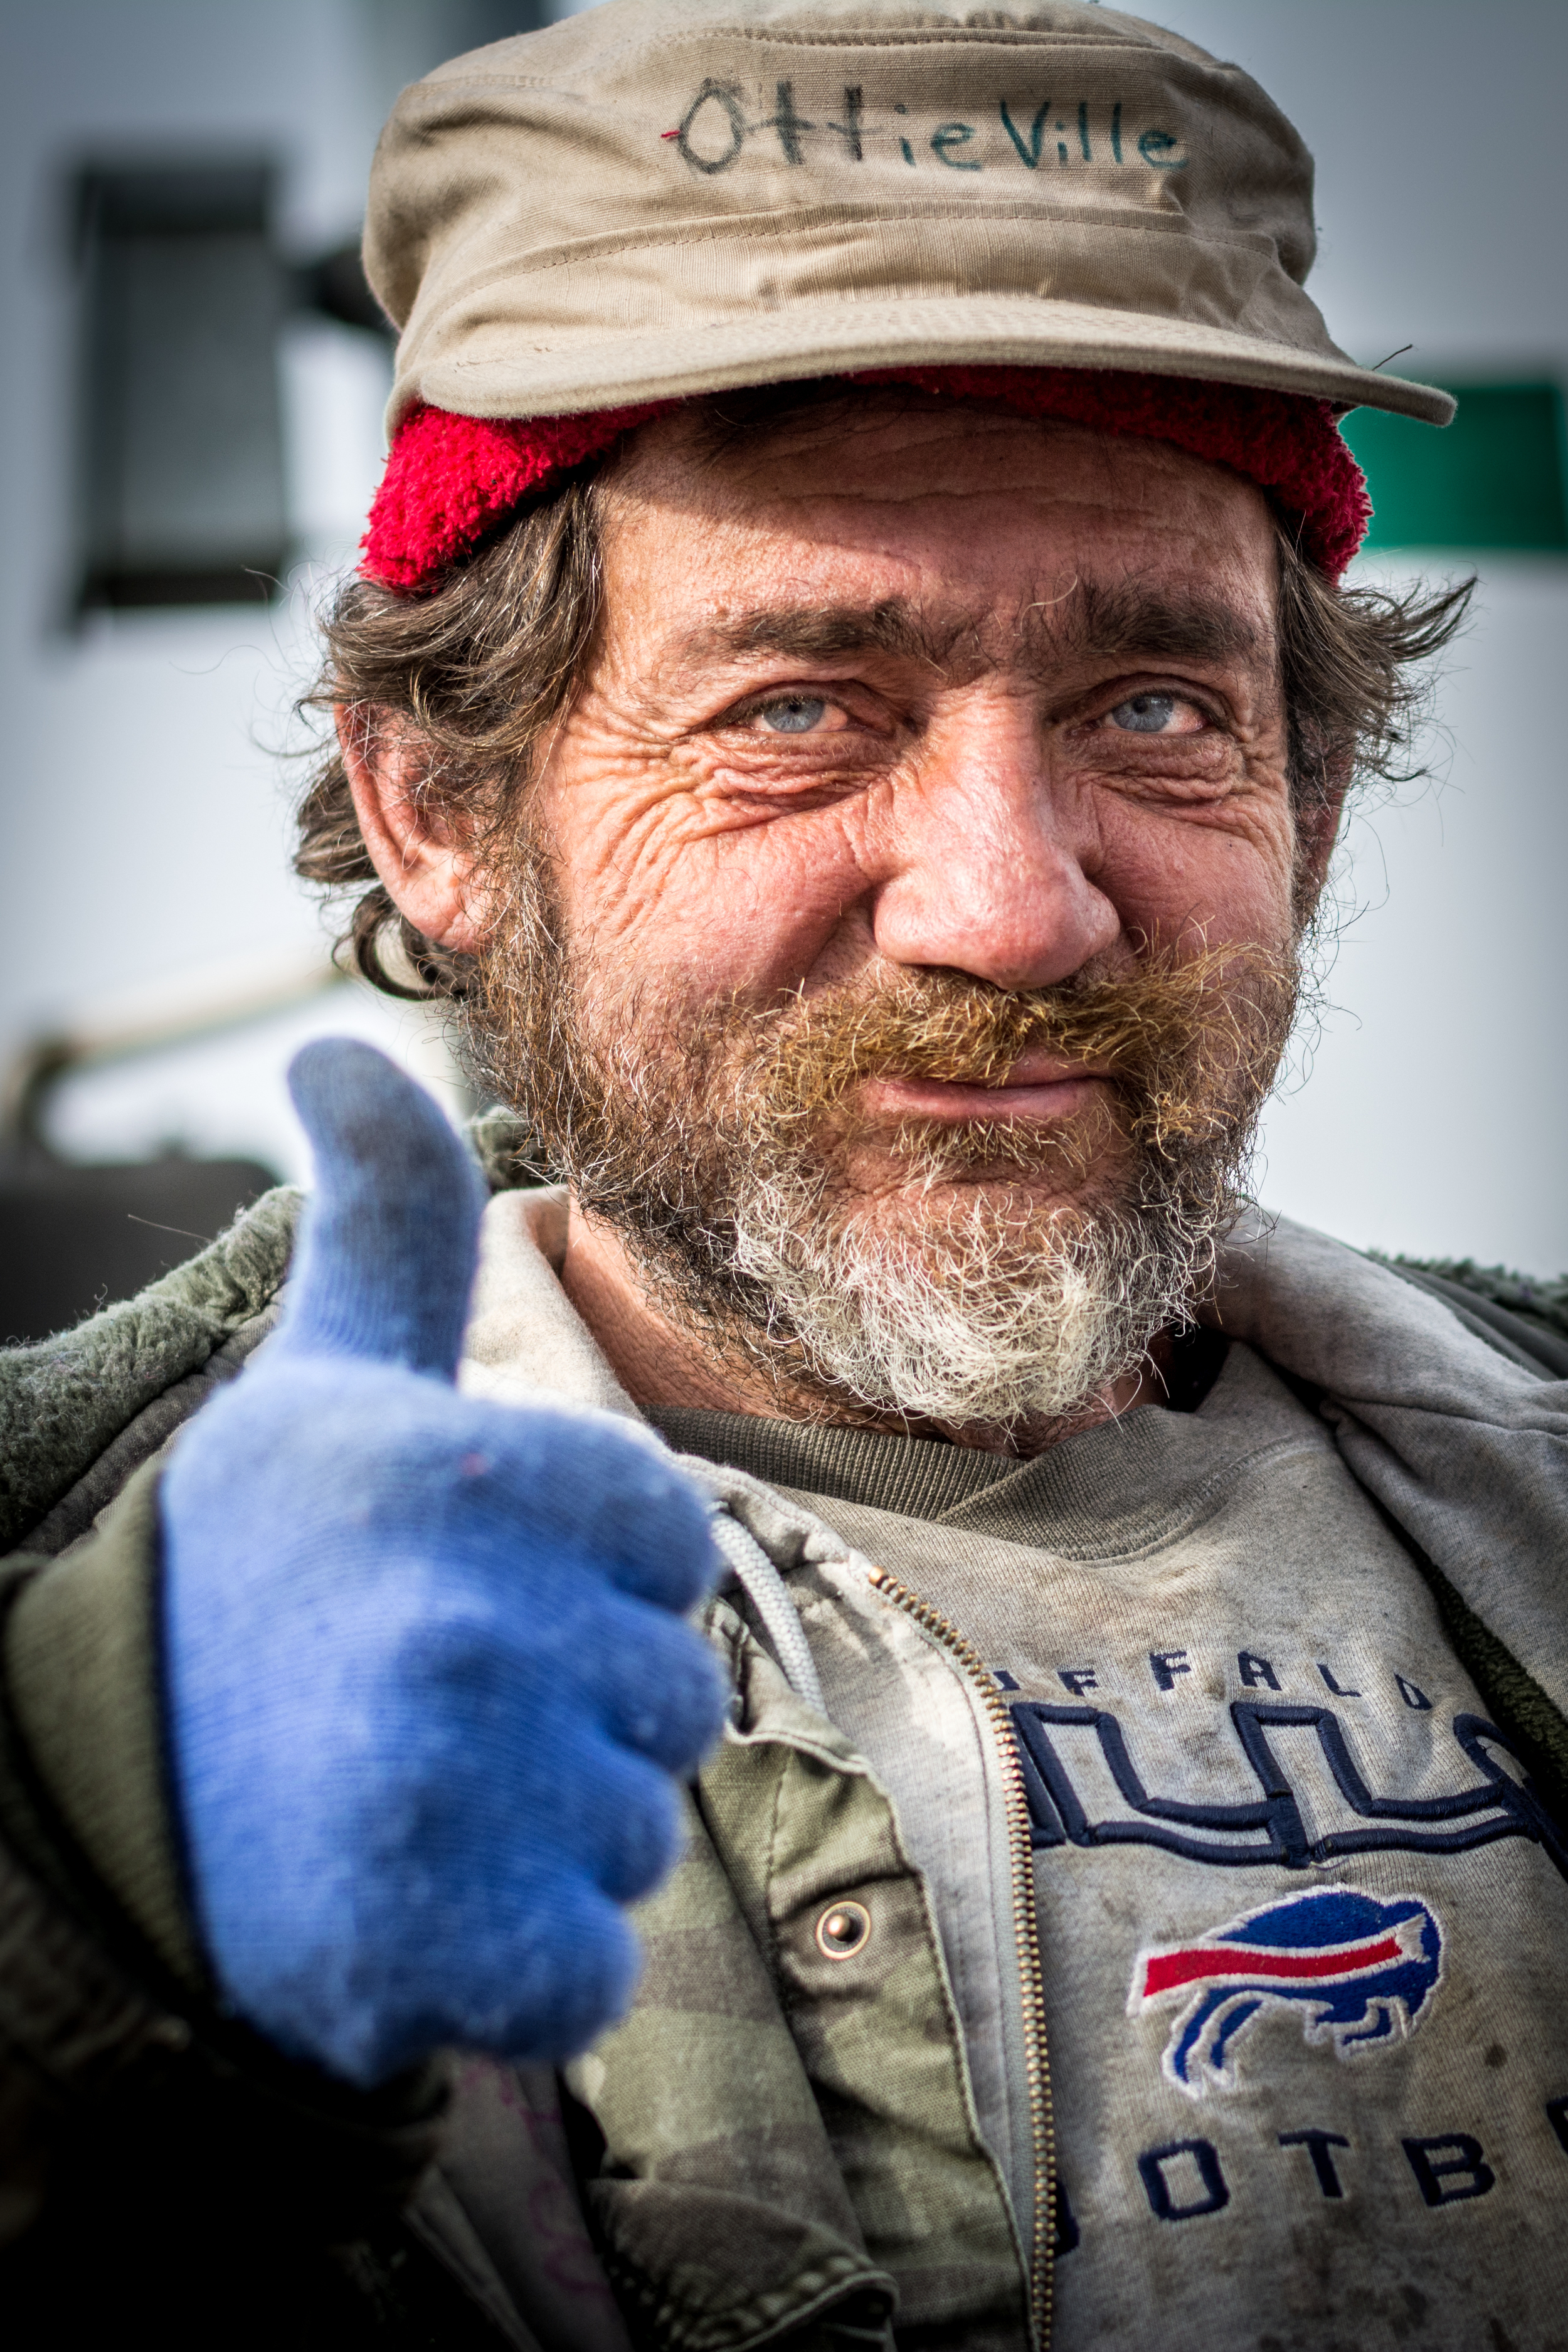 Hope for the homeless - wes fisher photography - portrait project - ottie.jpg